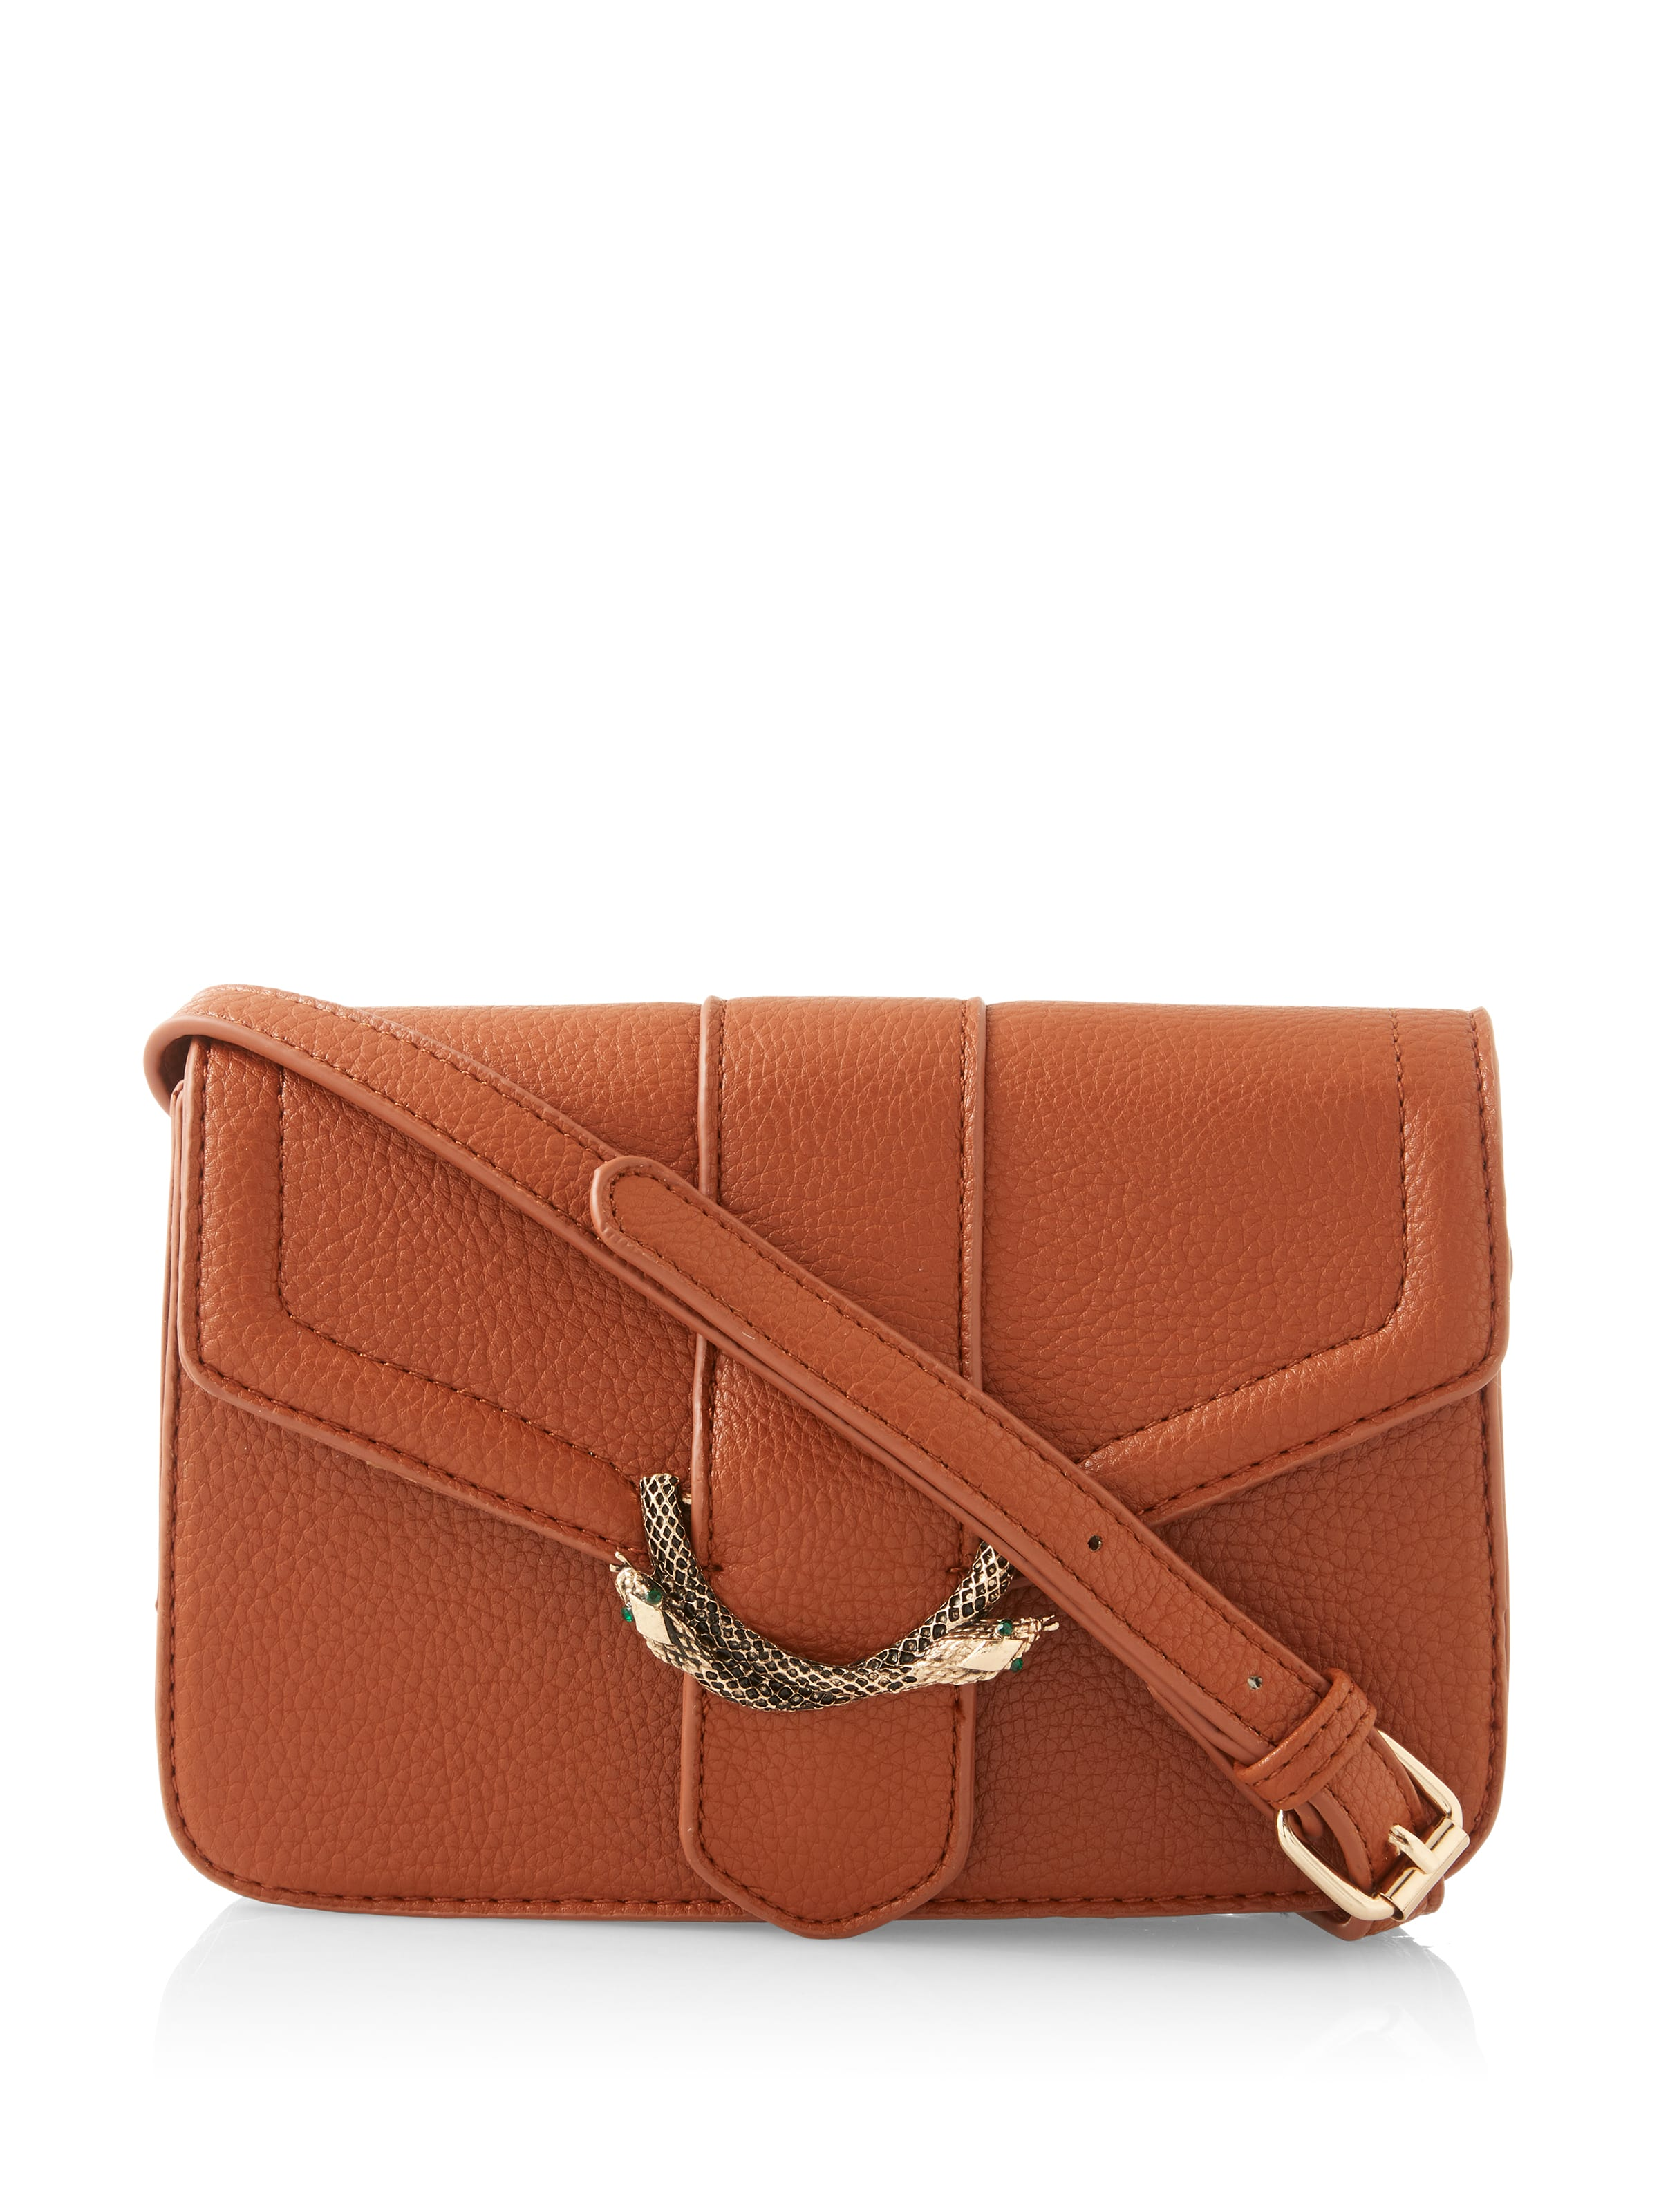 Snake Buckle Cross Body Bag